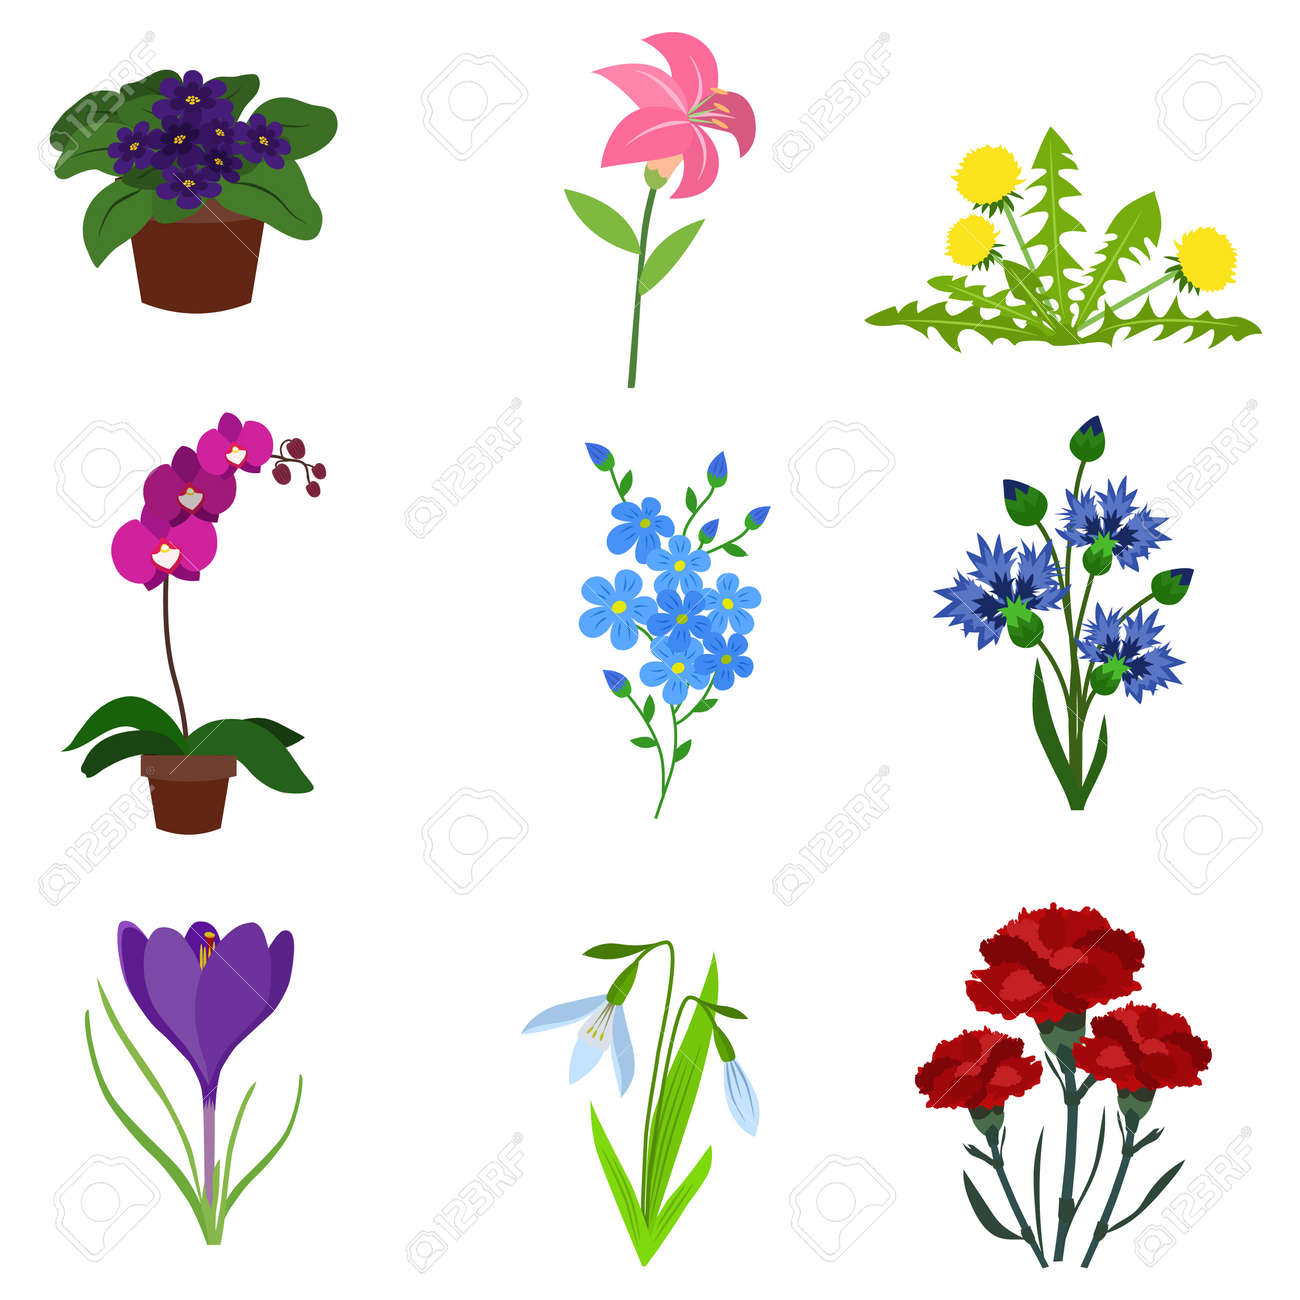 Variety Flowers Flat Icon Set Royalty Free Cliparts Vectors And